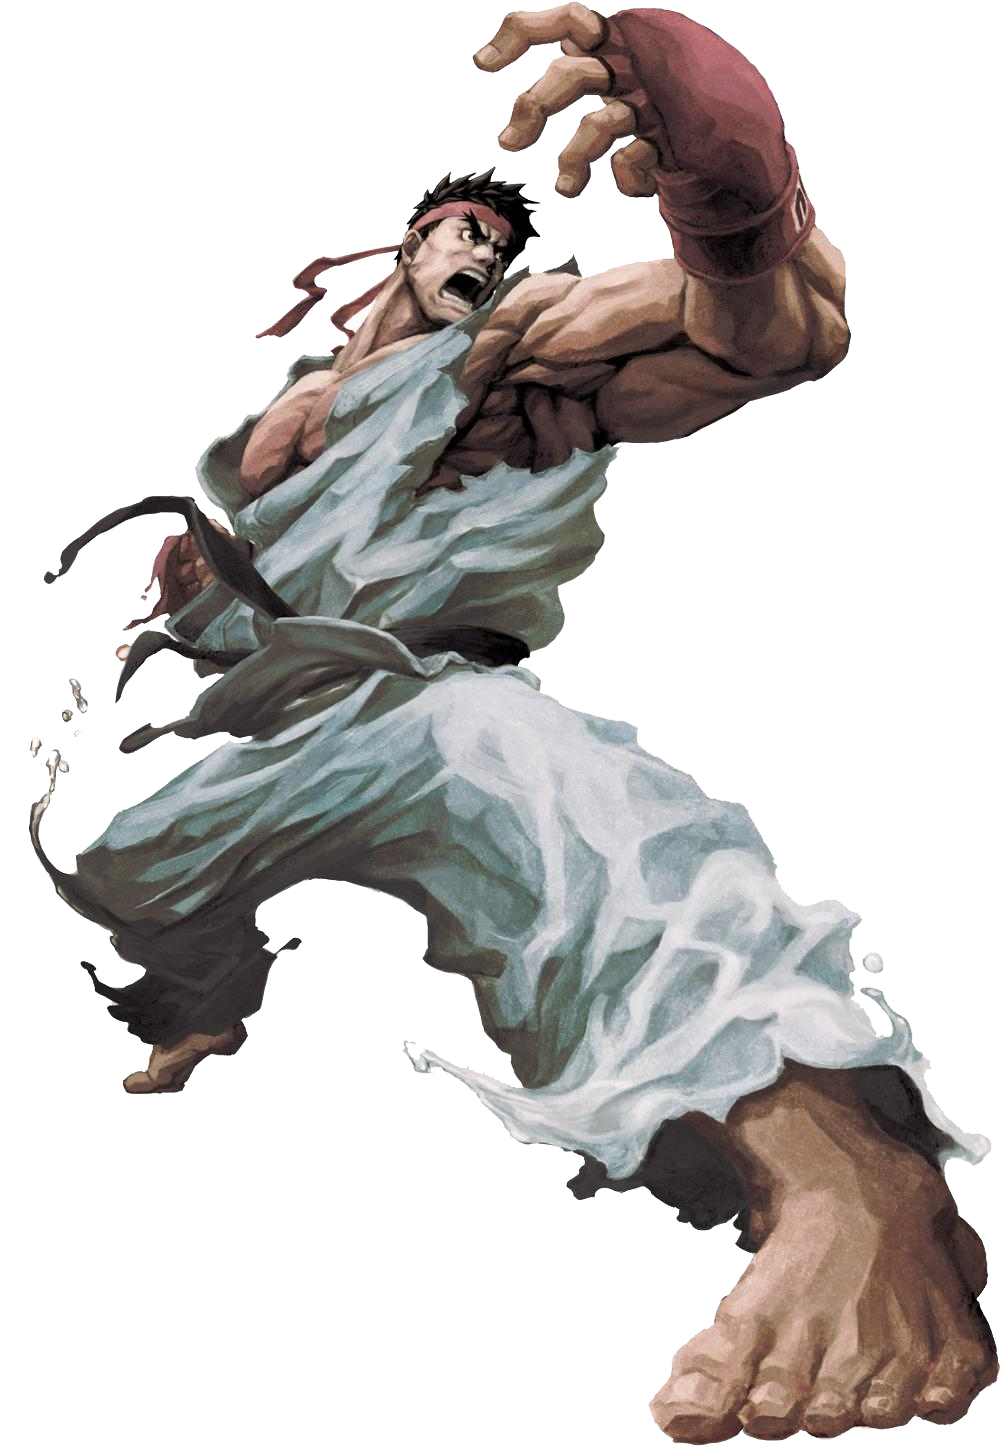 PNG PlusPng.com  - Street Fighter PNG